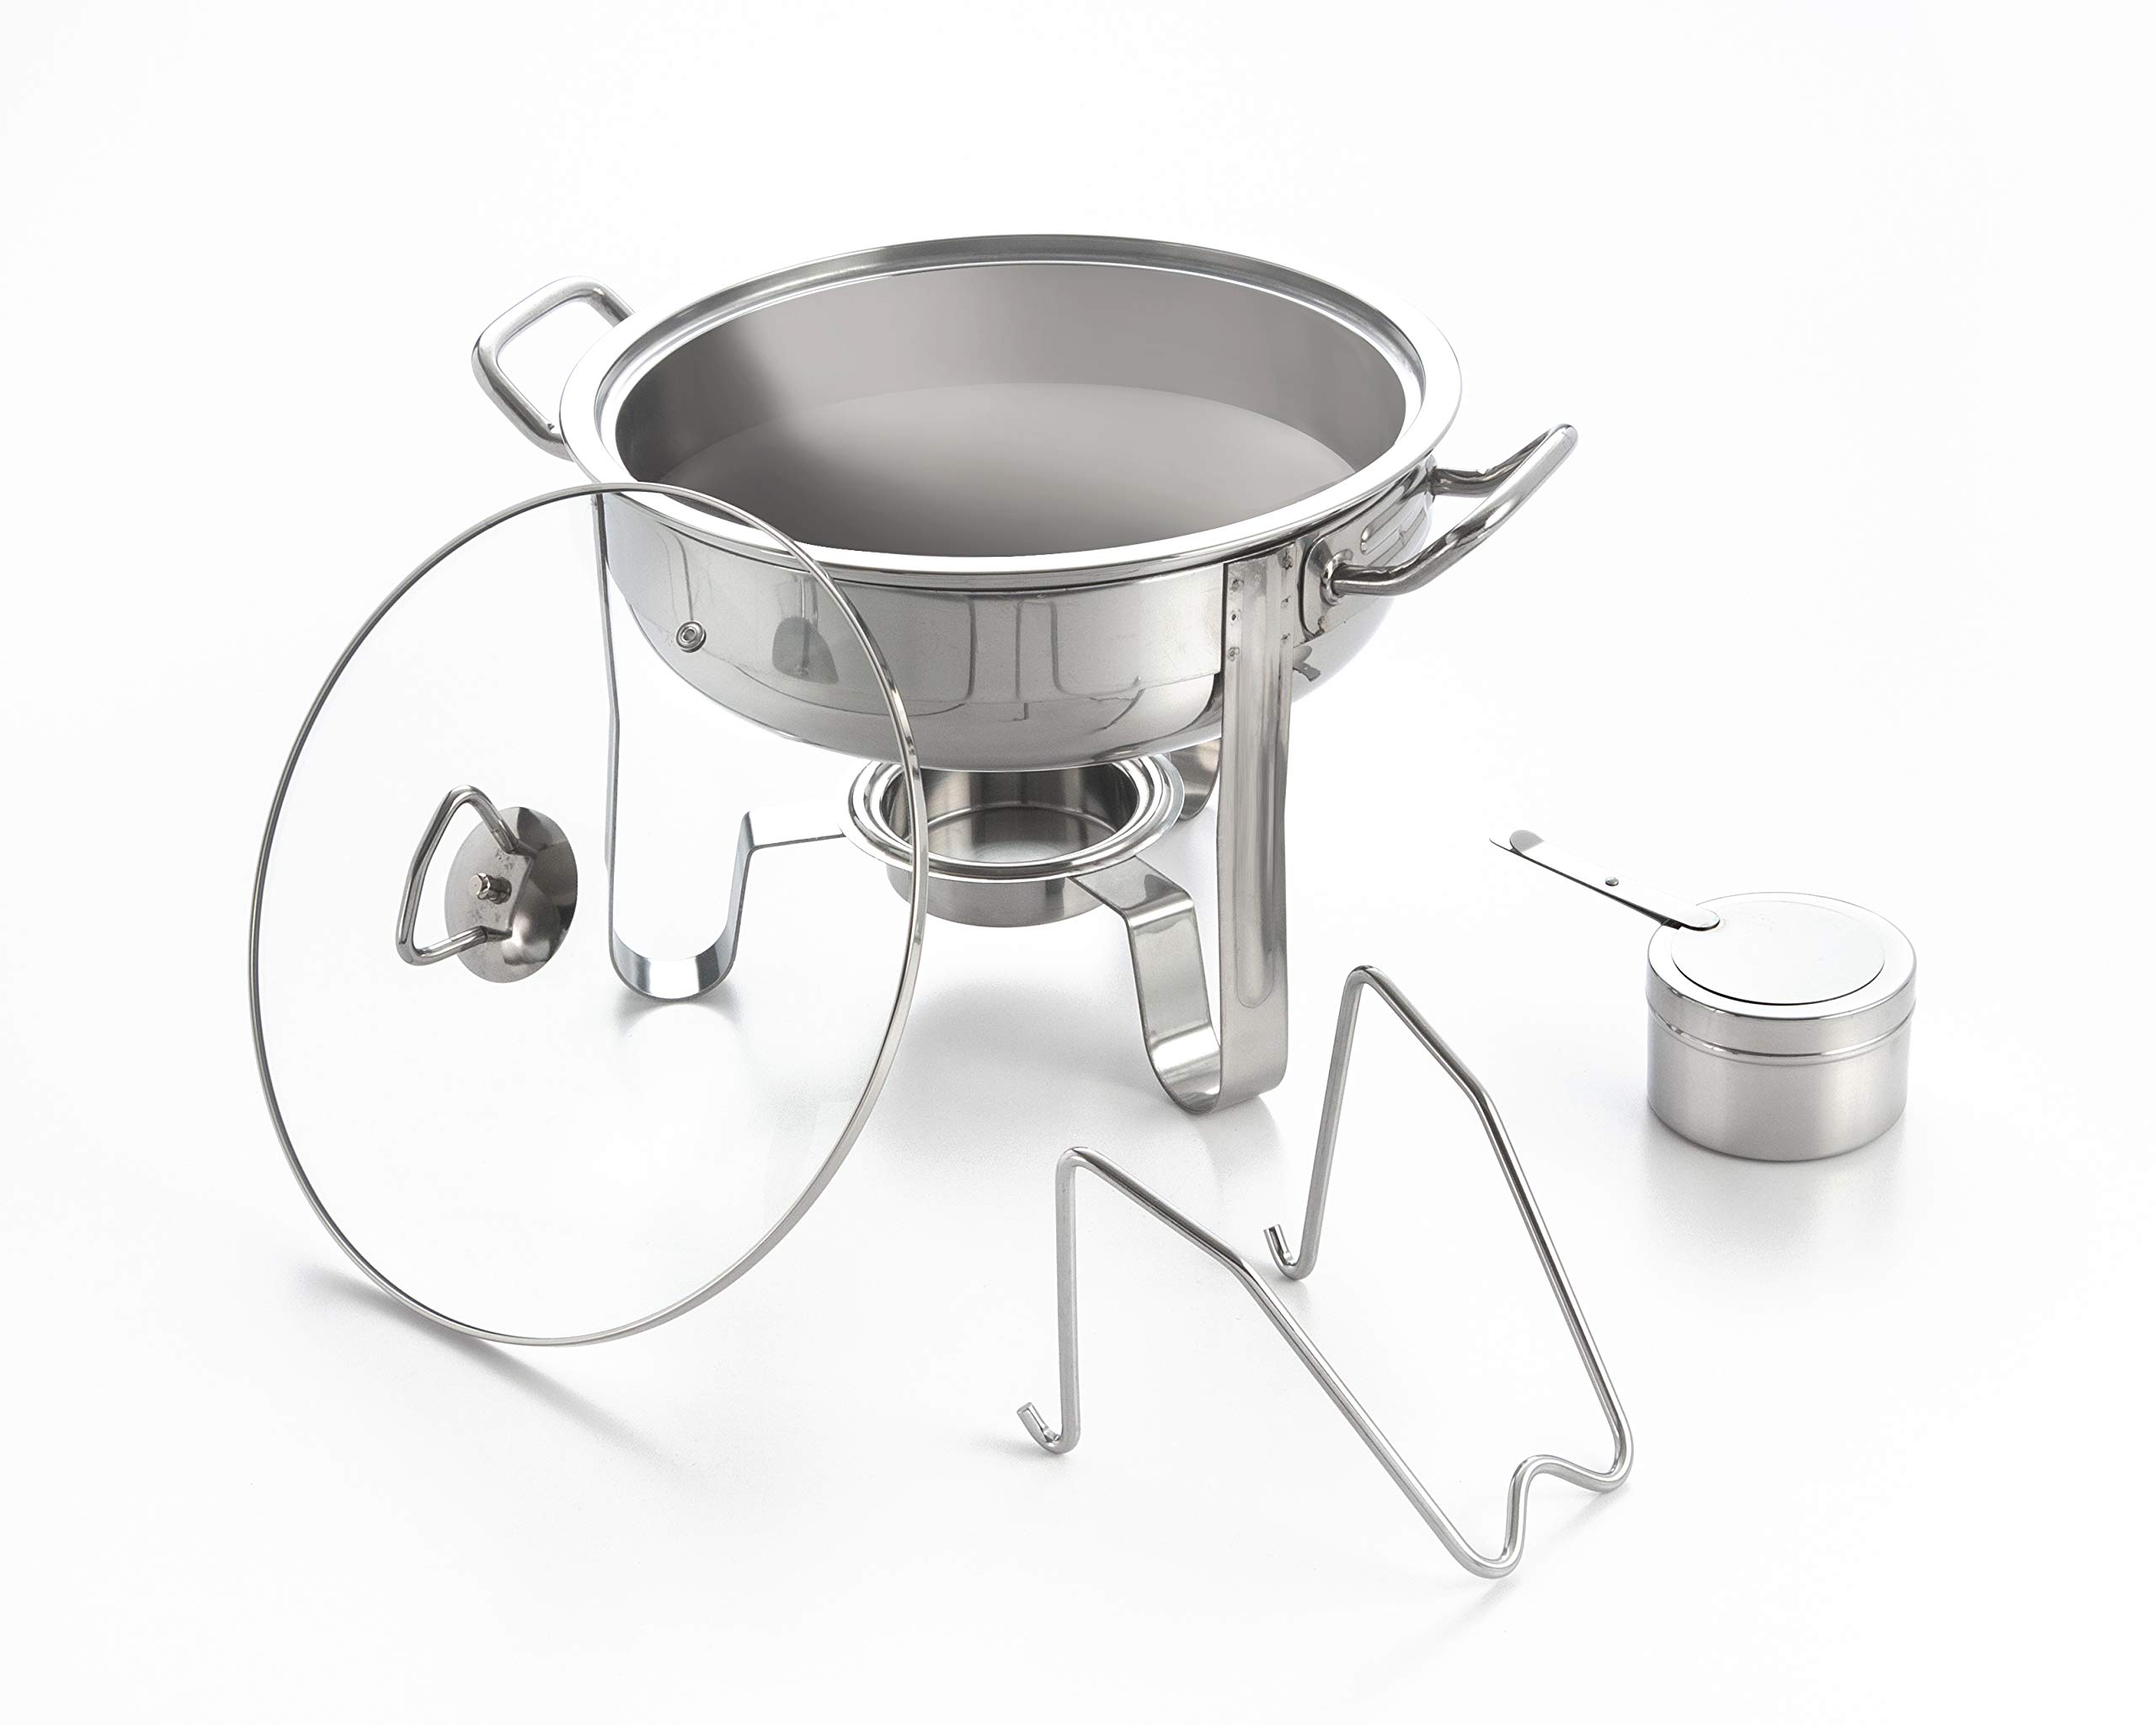 Excelsteel 4-Quart Heavy Duty Professional Stainless Chafing Dish by ExcelSteel